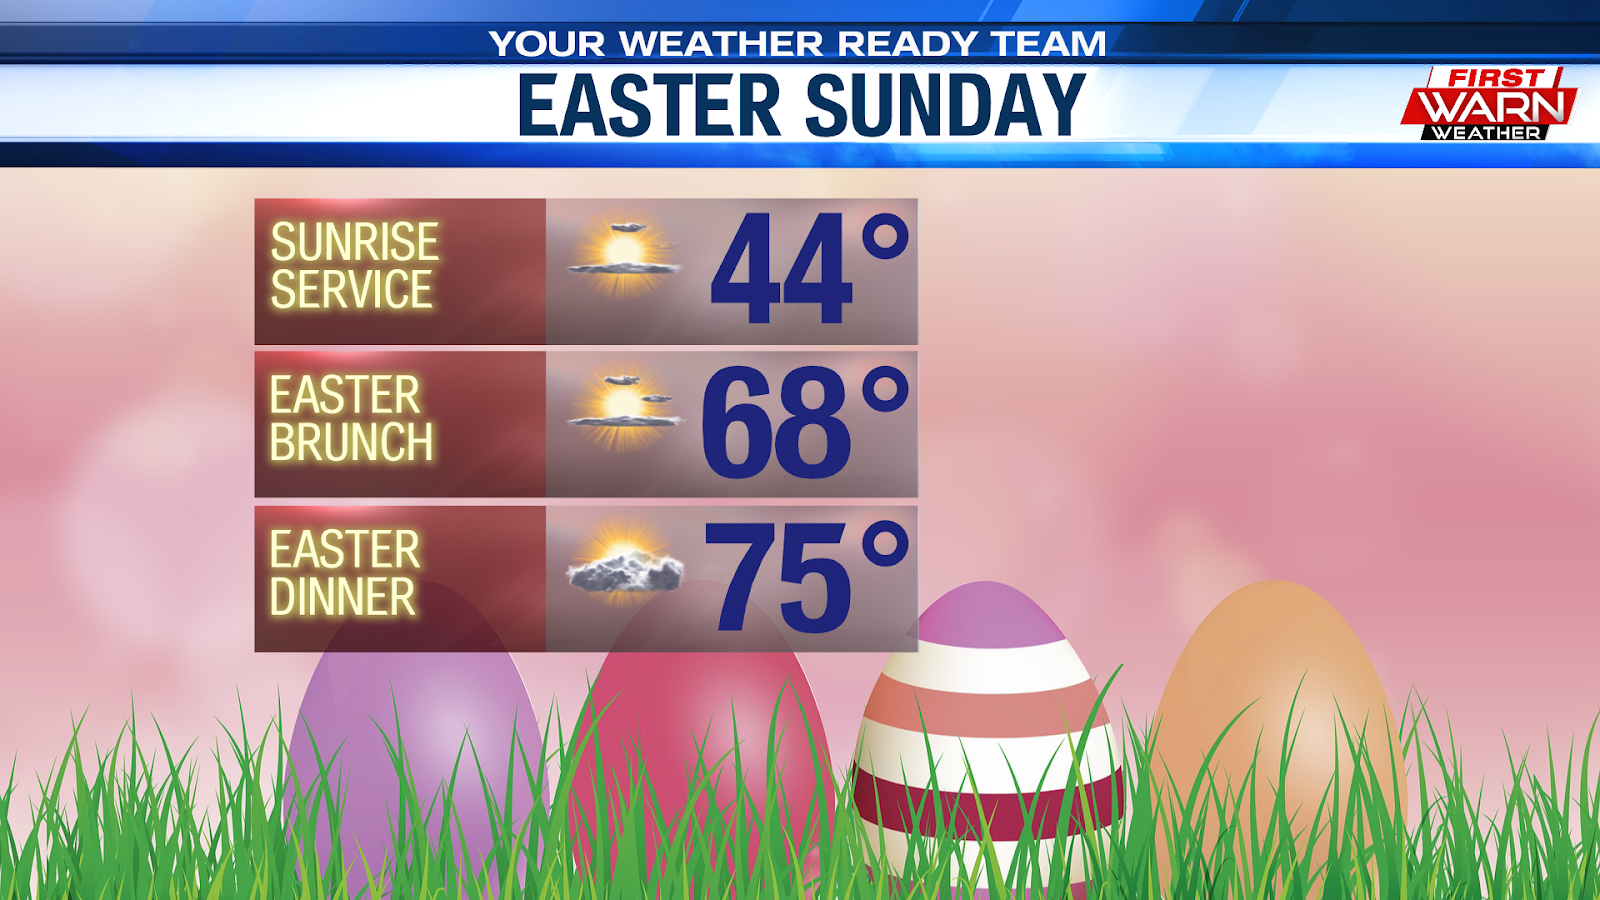 Warm Easter Sunday